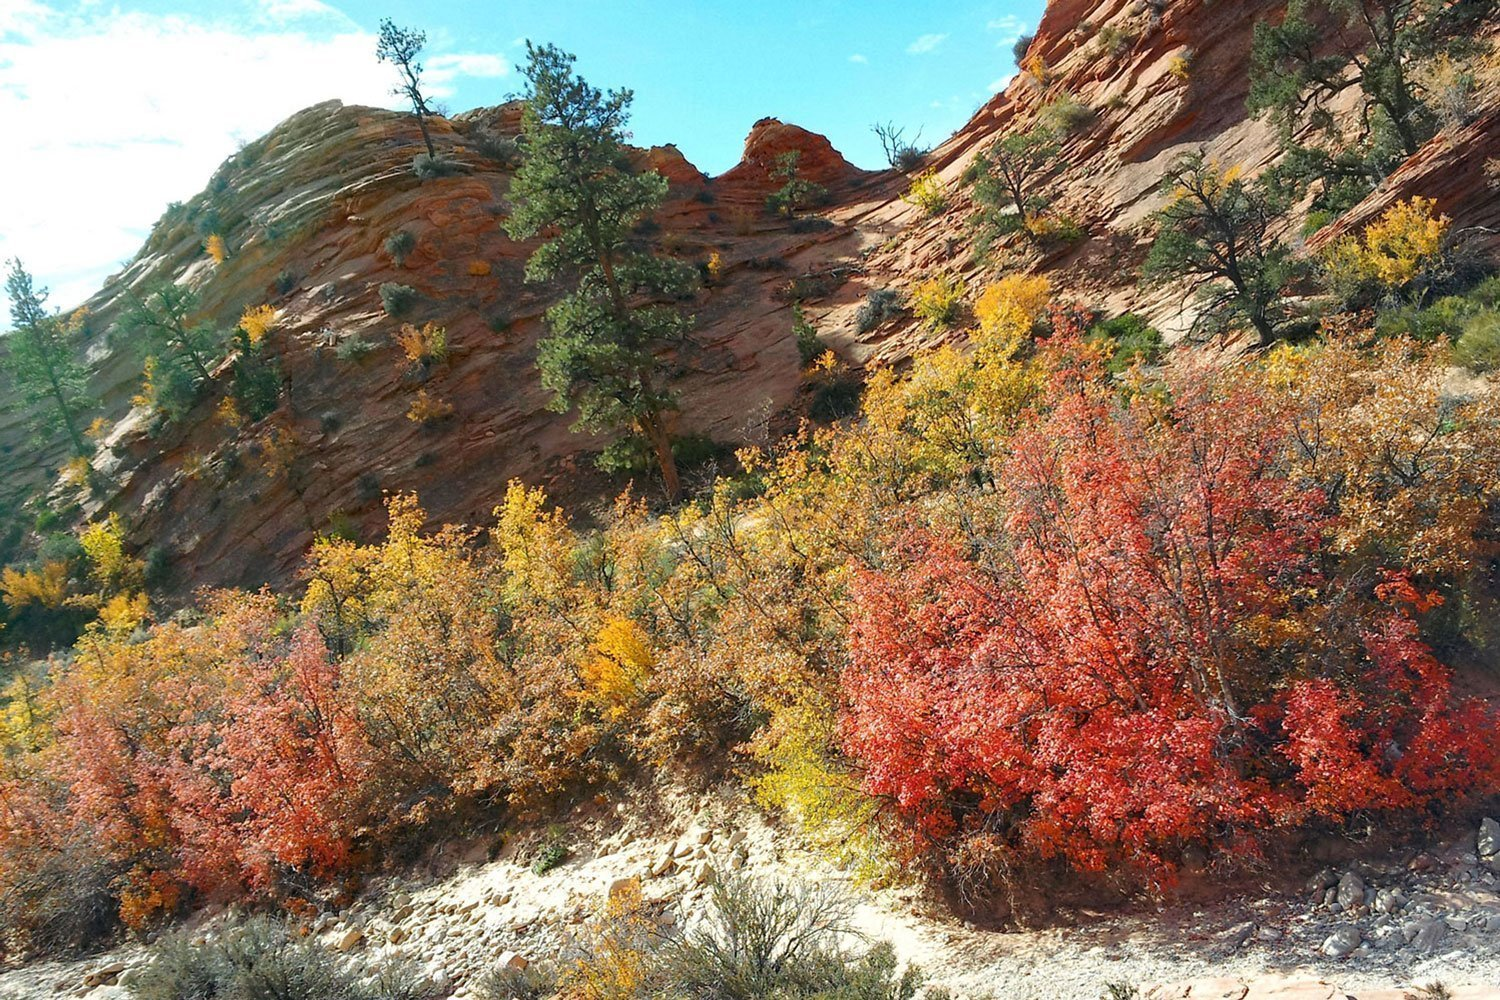 Canyon road trip, autumn colors in Zion National Park, Utah